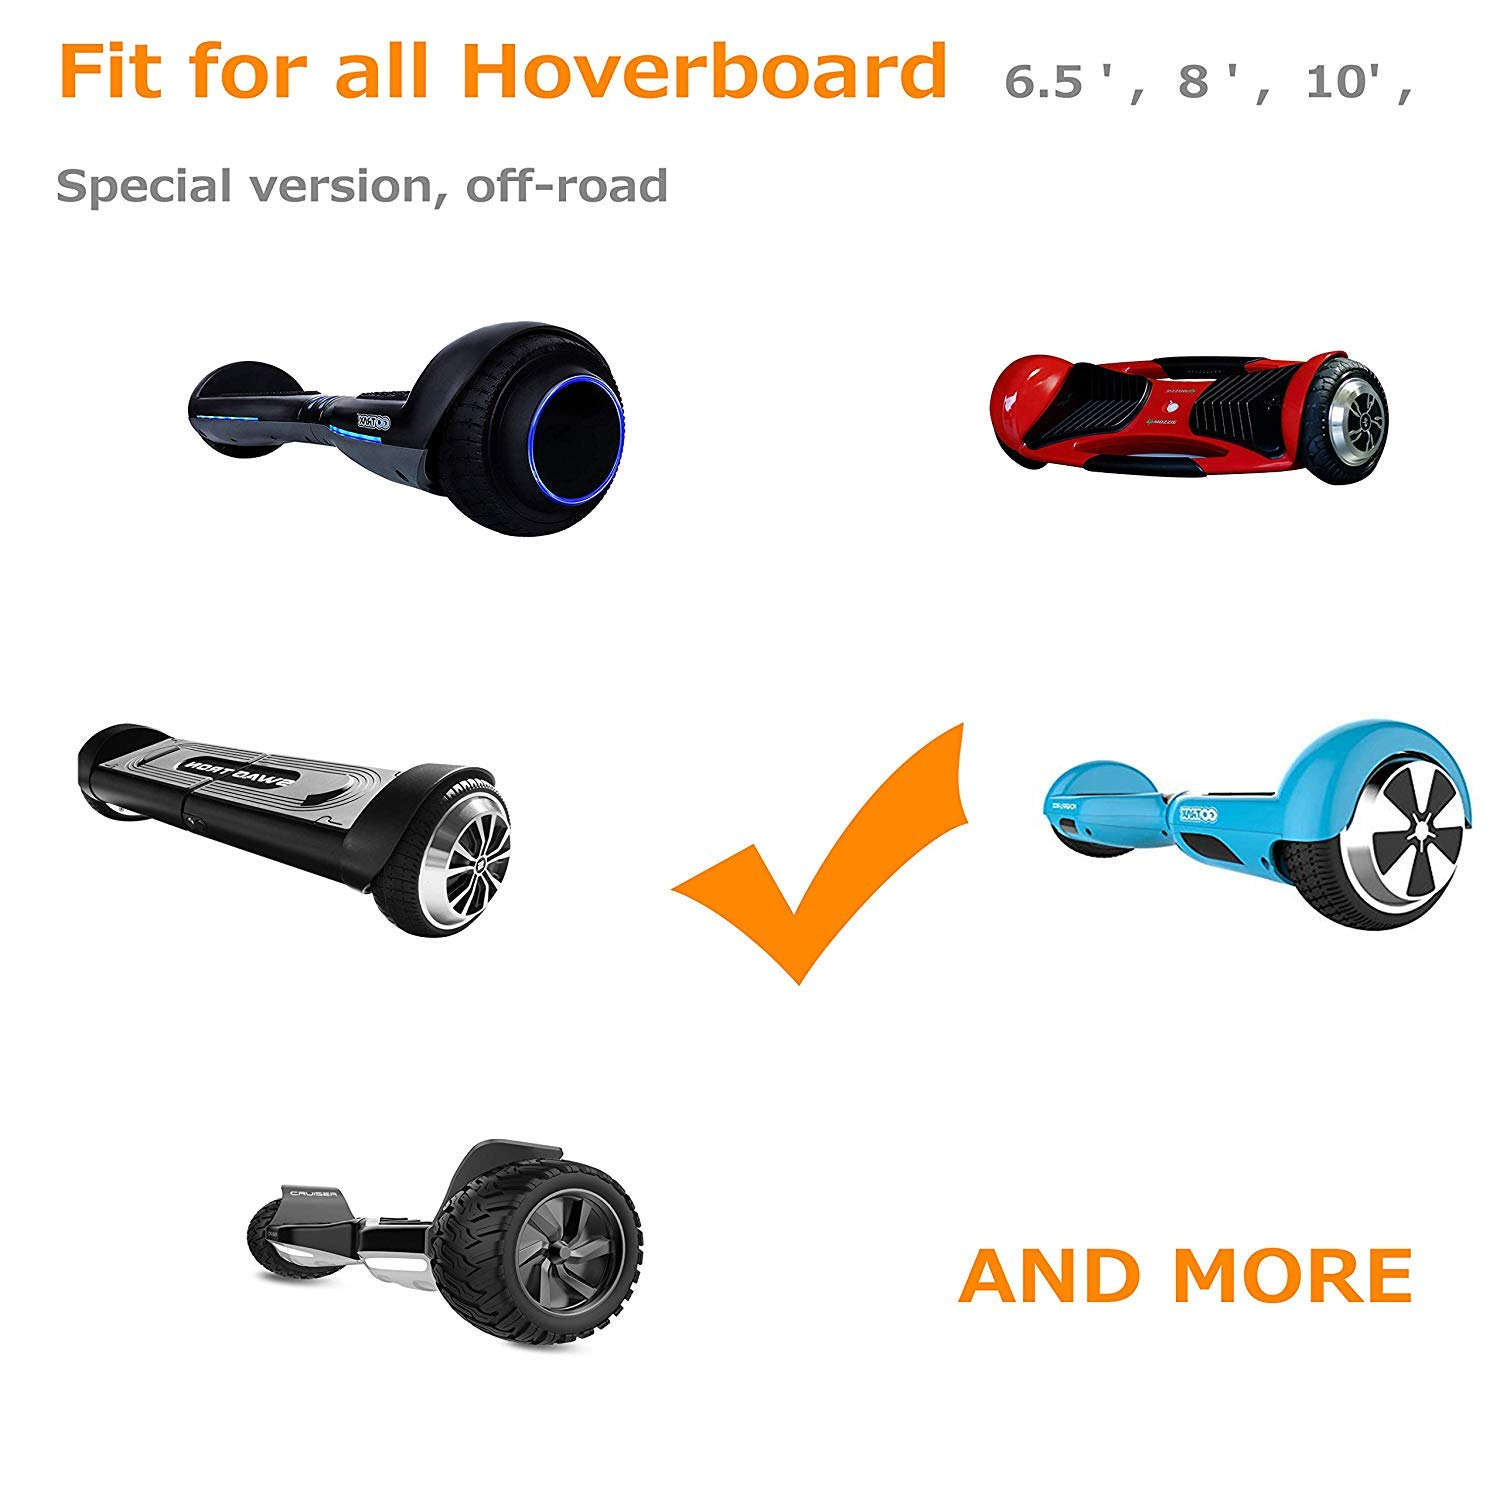 Go Kart for Hoverboard Kart Seat Accessories for Kids Hoverseat Two Wheels Go Car Style Holder for 6.5in 8in 10in